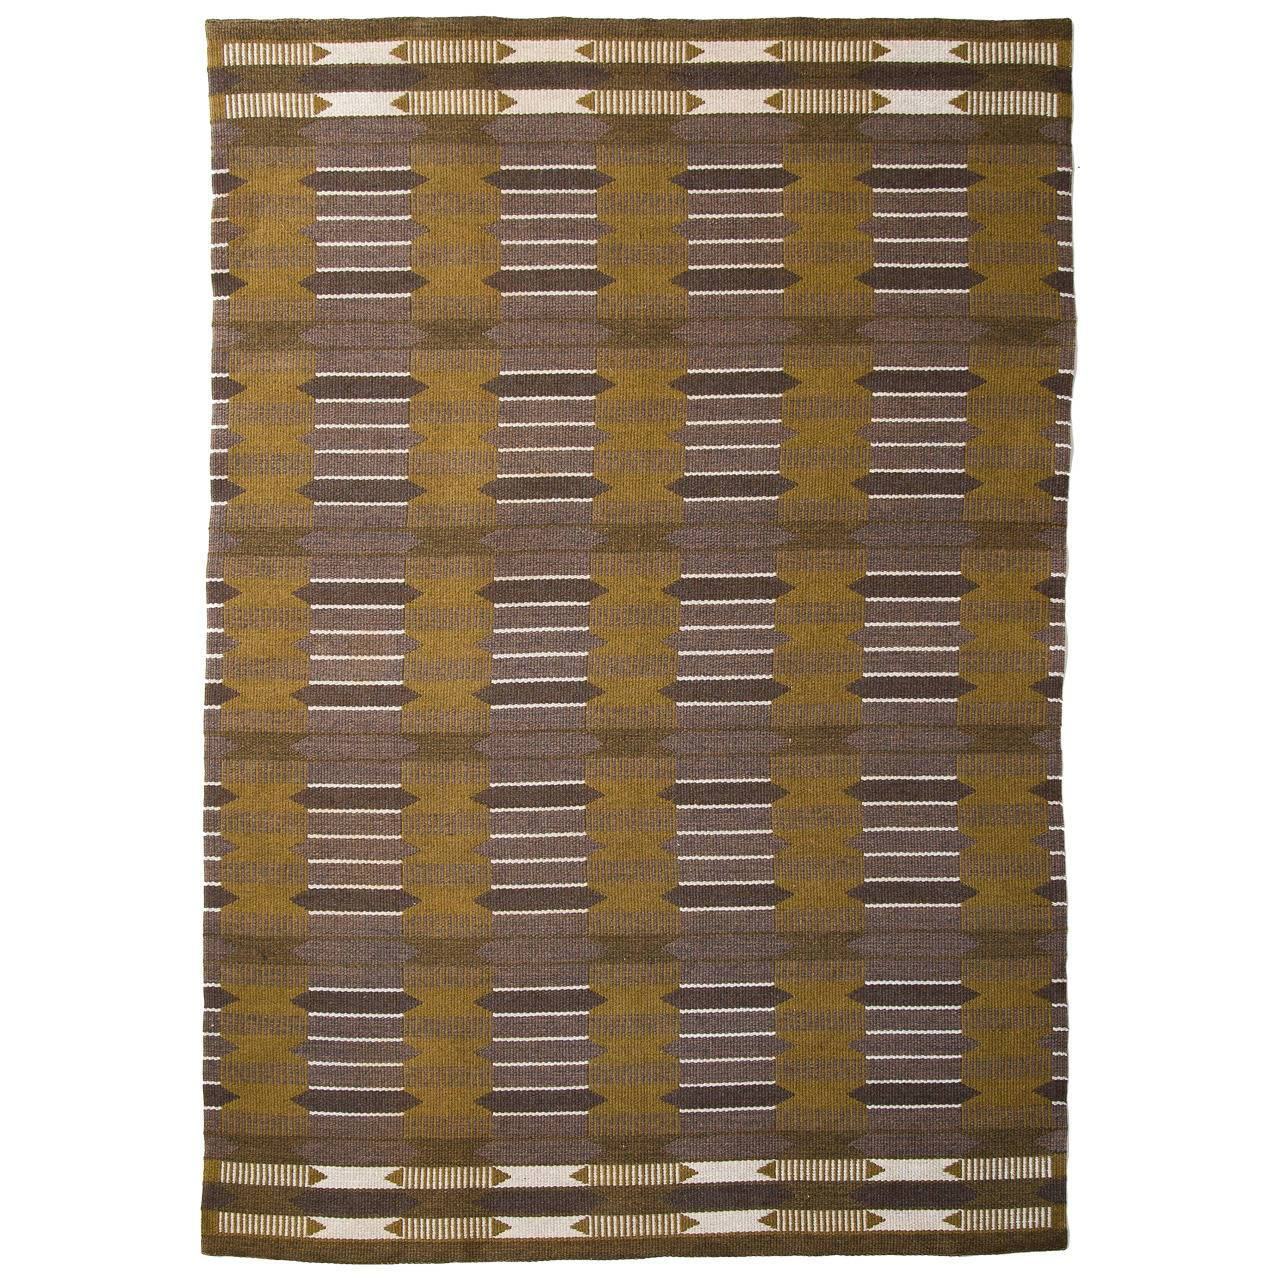 Vintage Swedish Flat-Weave Carpet, Handmade, 1950s - The Exchange Int